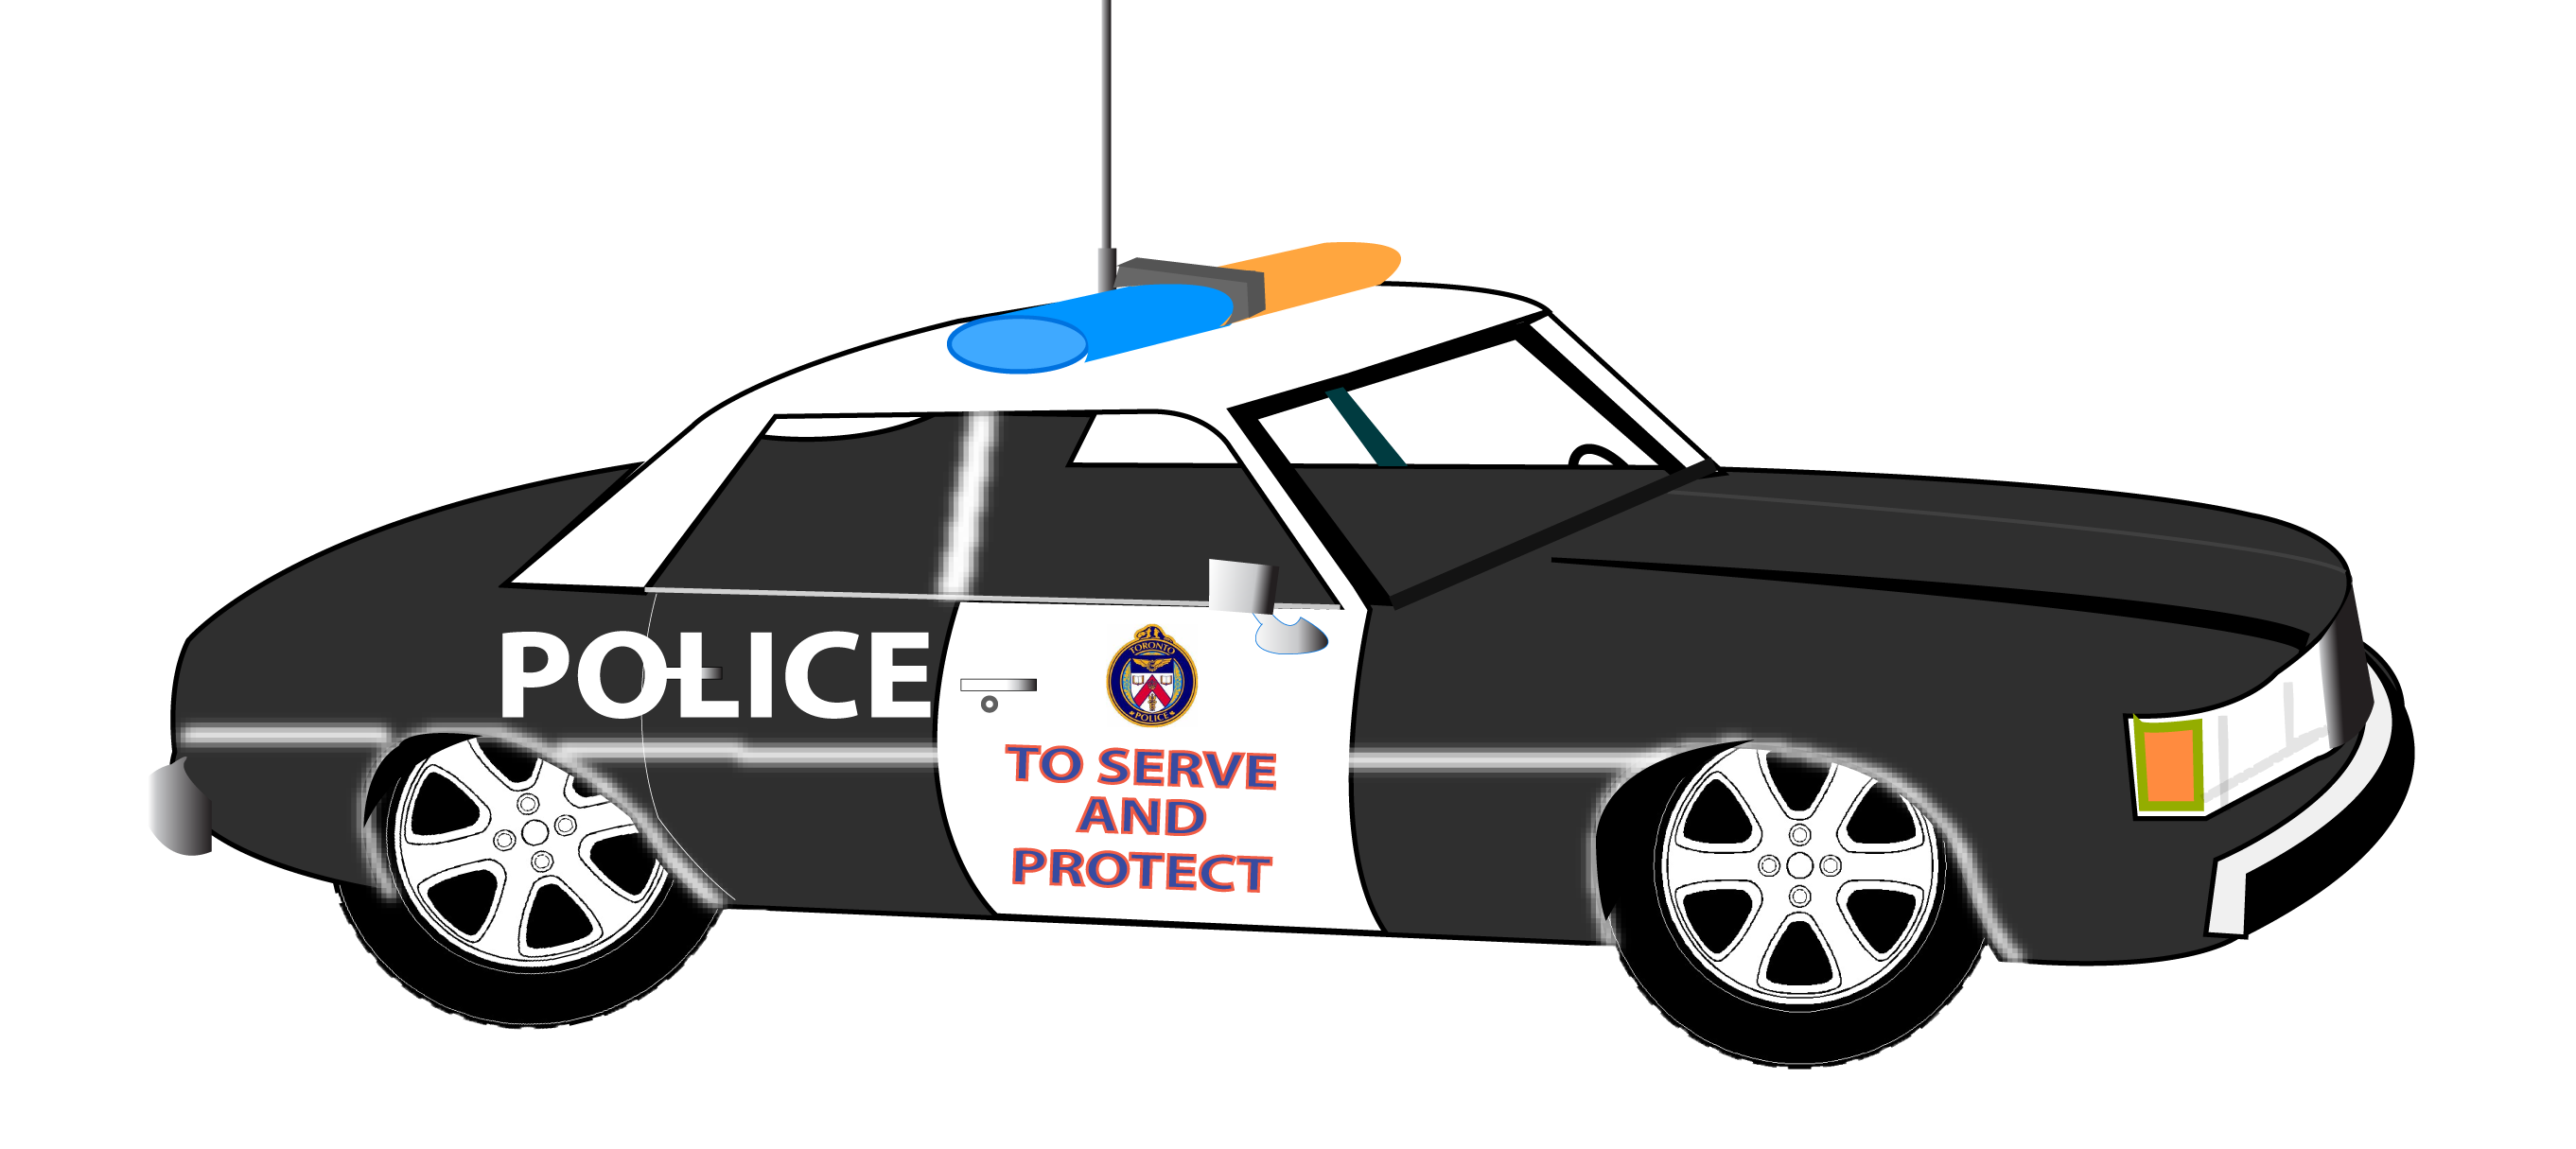 Free Police Car Clip Art, Download Free Clip Art, Free Clip.